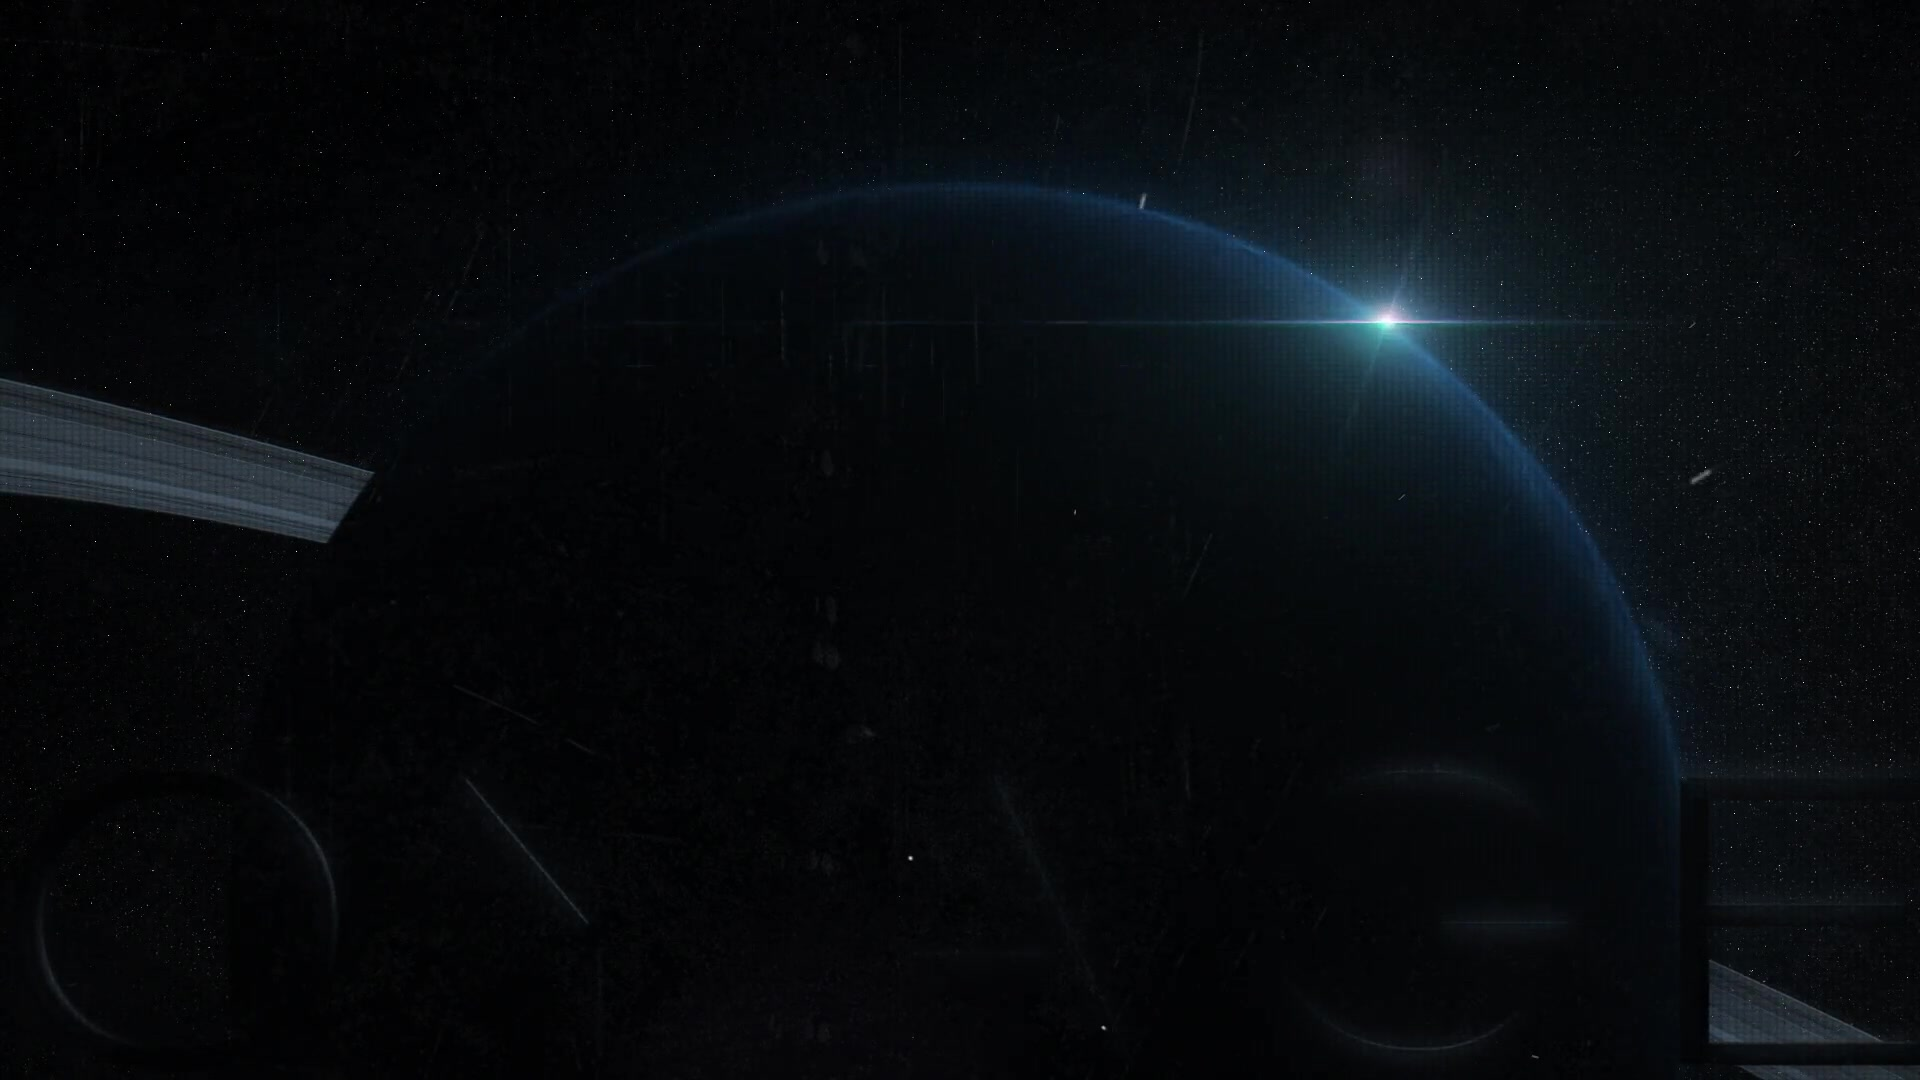 Planet Logo Title Reveal Videohive 20869322 After Effects Image 6